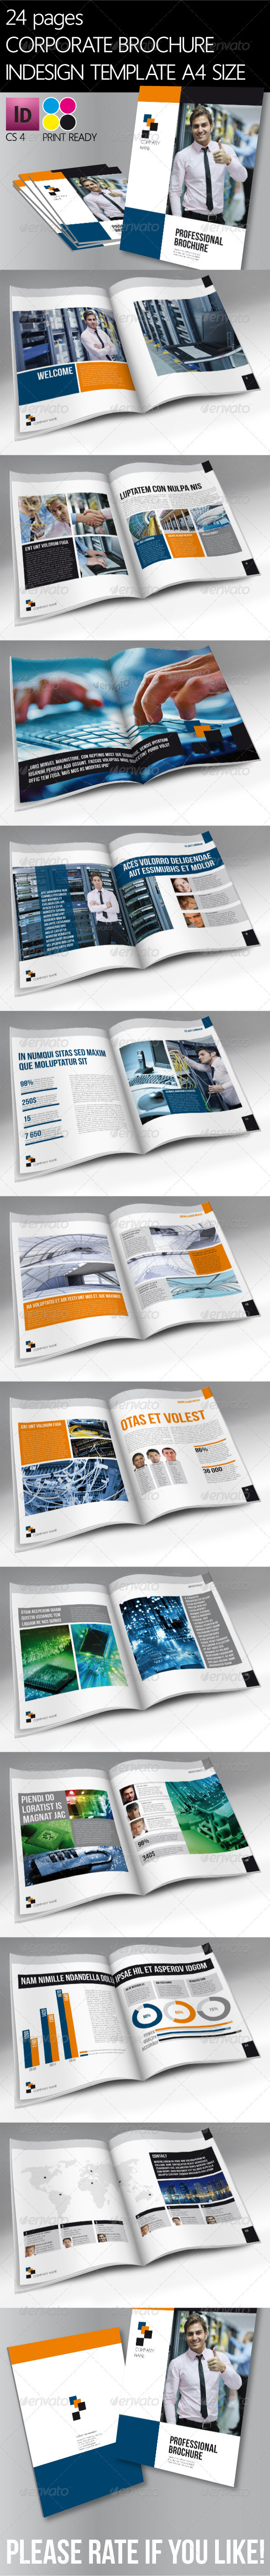 24 Pages Brochure - Brochures Print Templates